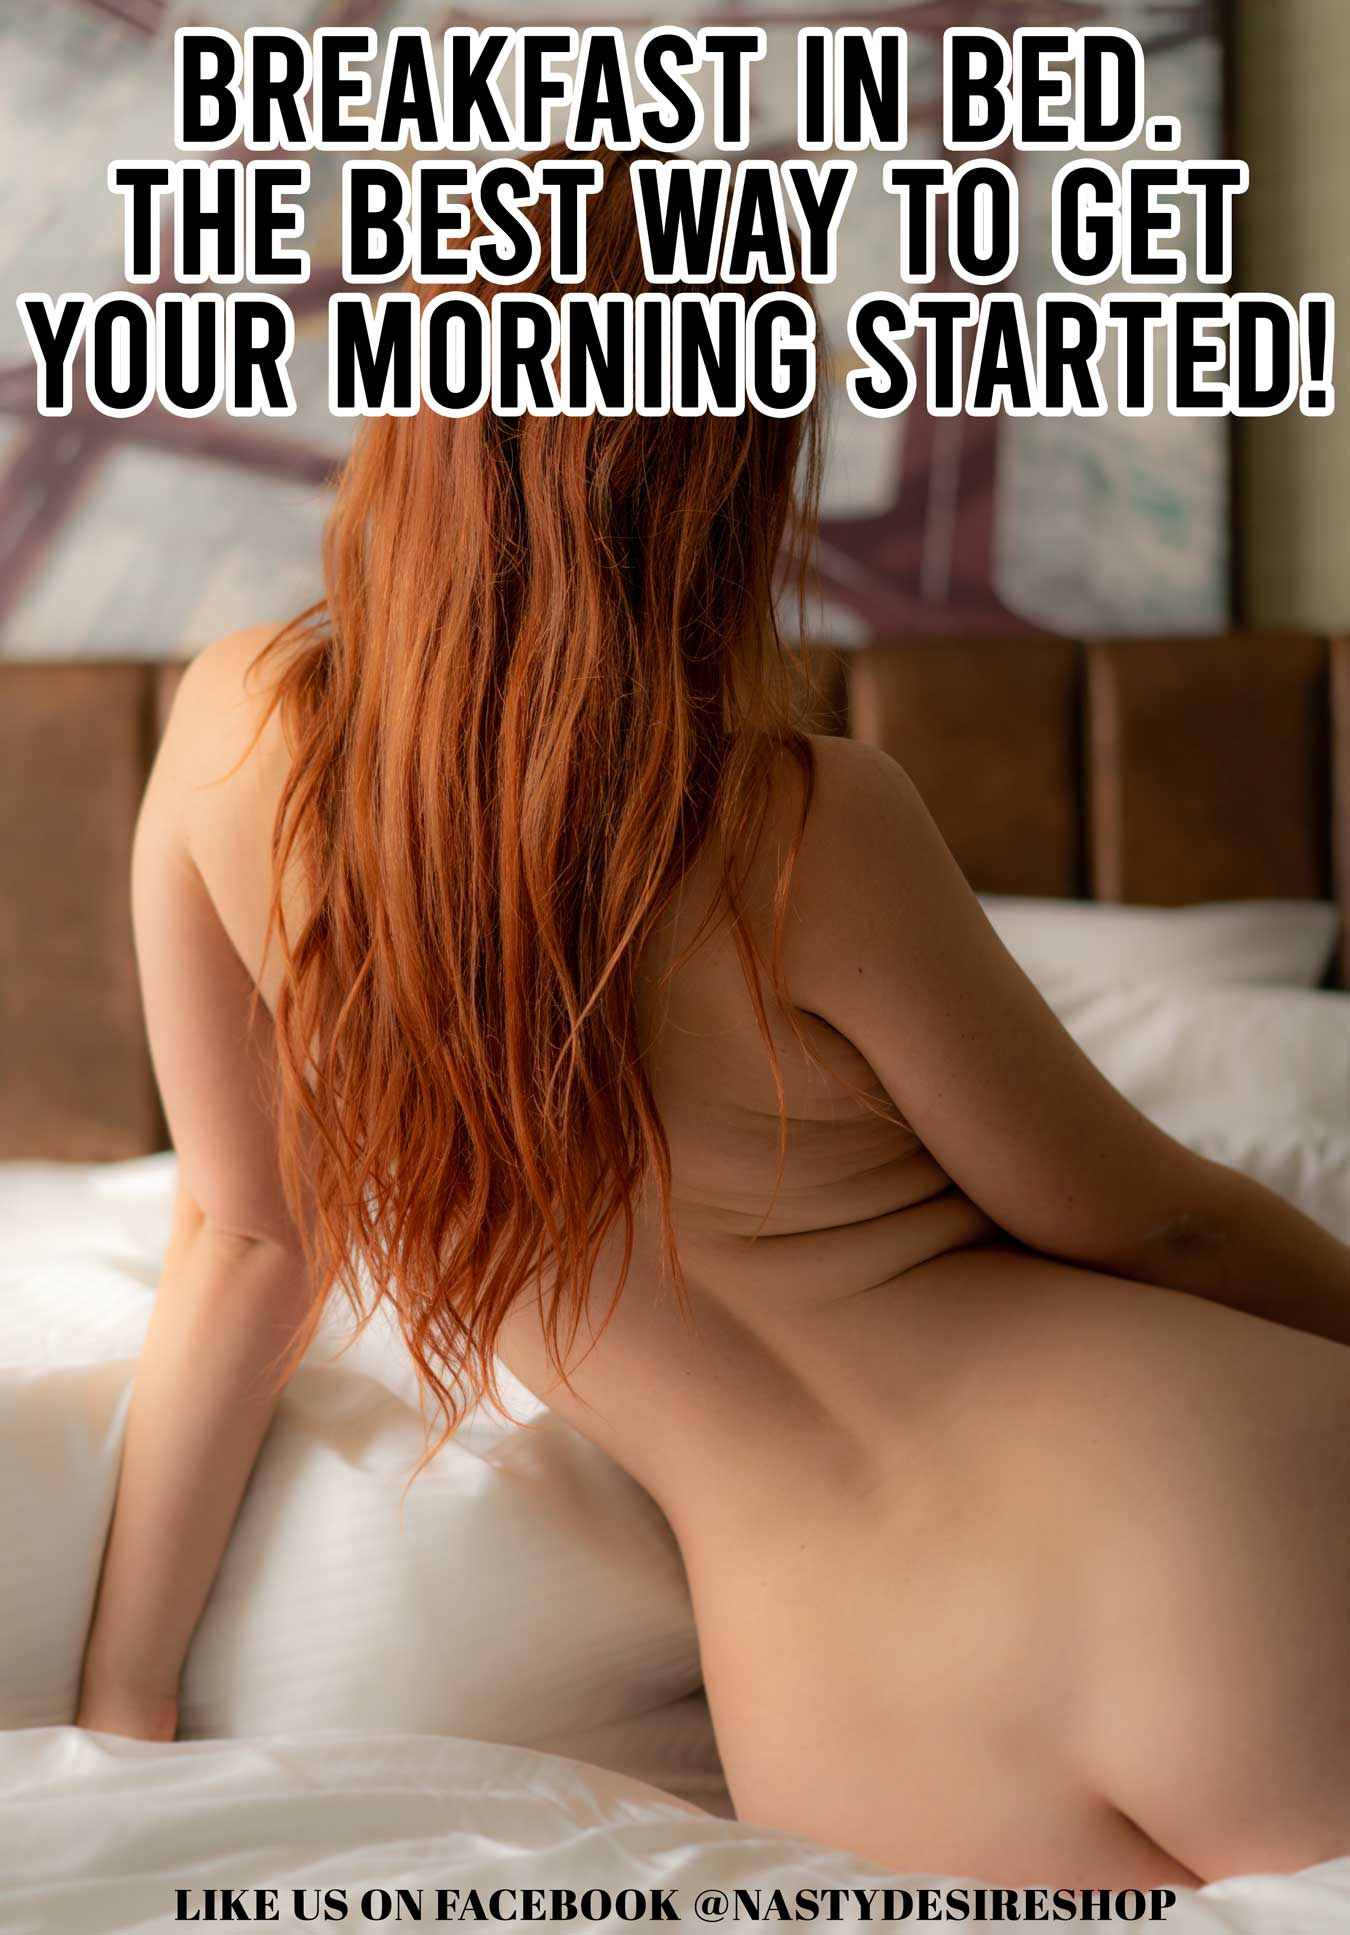 Adult Meme: Breakfast in Bed The Best Way to Get Your Morning Started